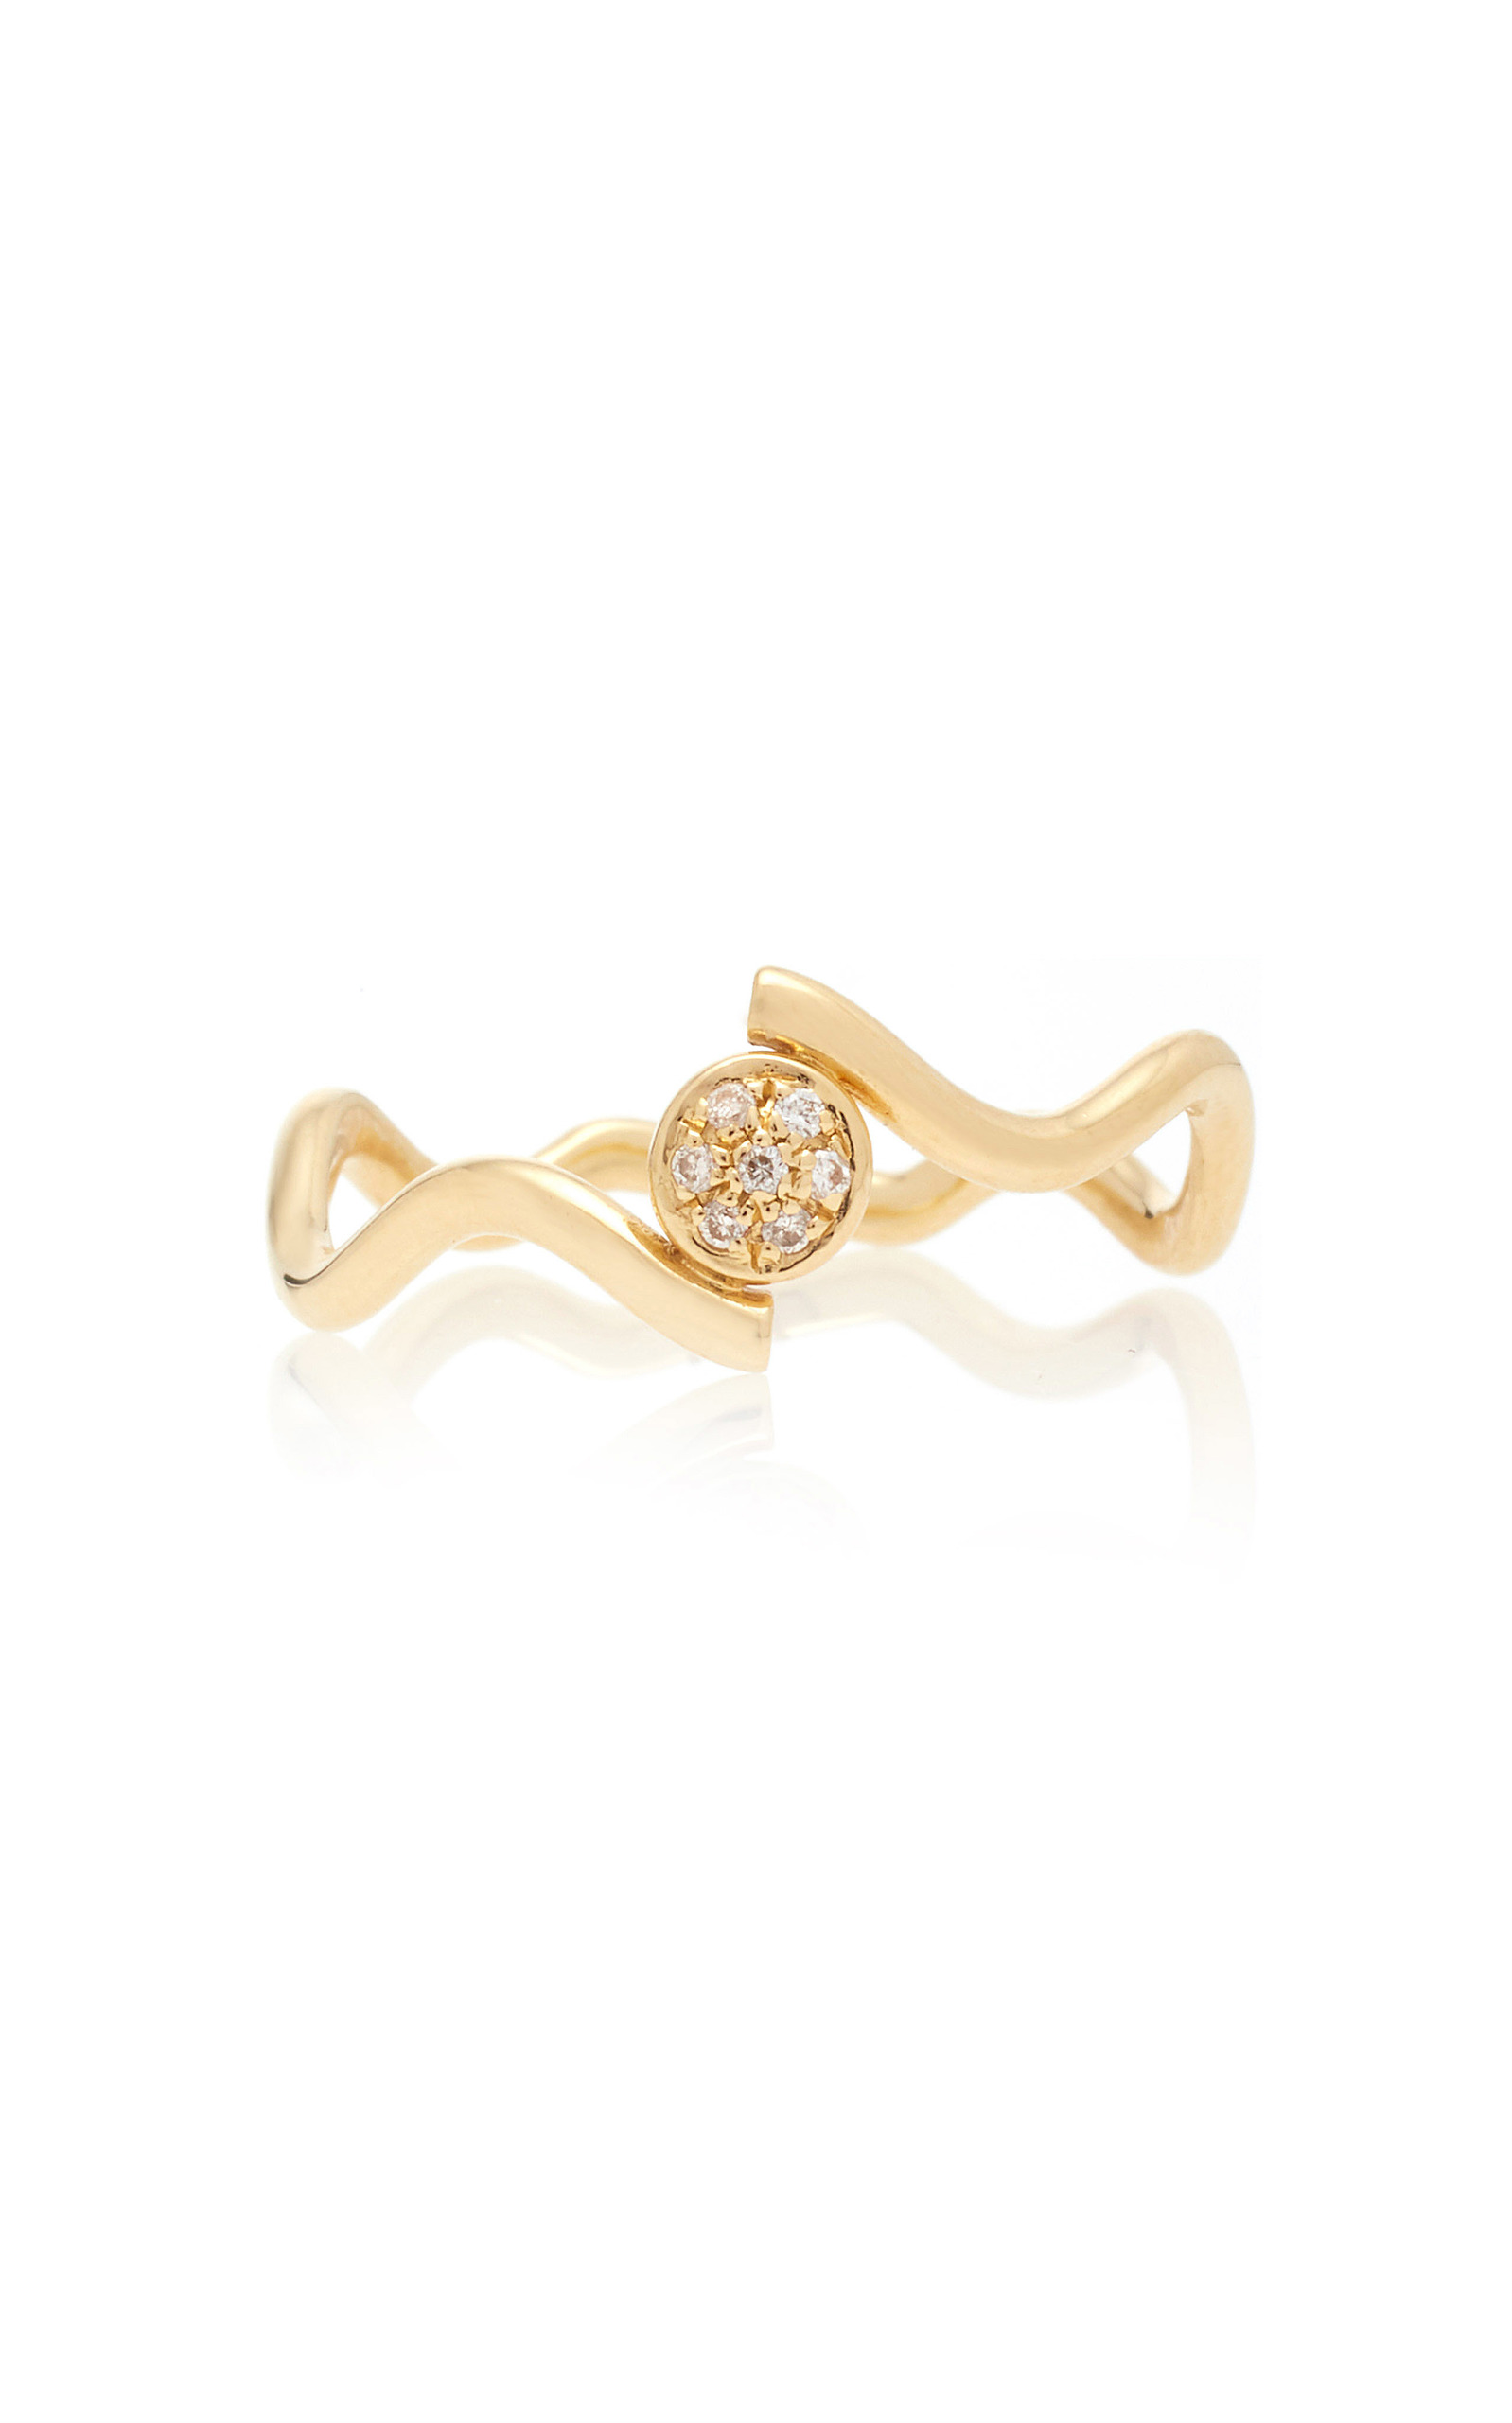 Gold and Diamond Wiggly Love Ring Sabine Getty REdC7